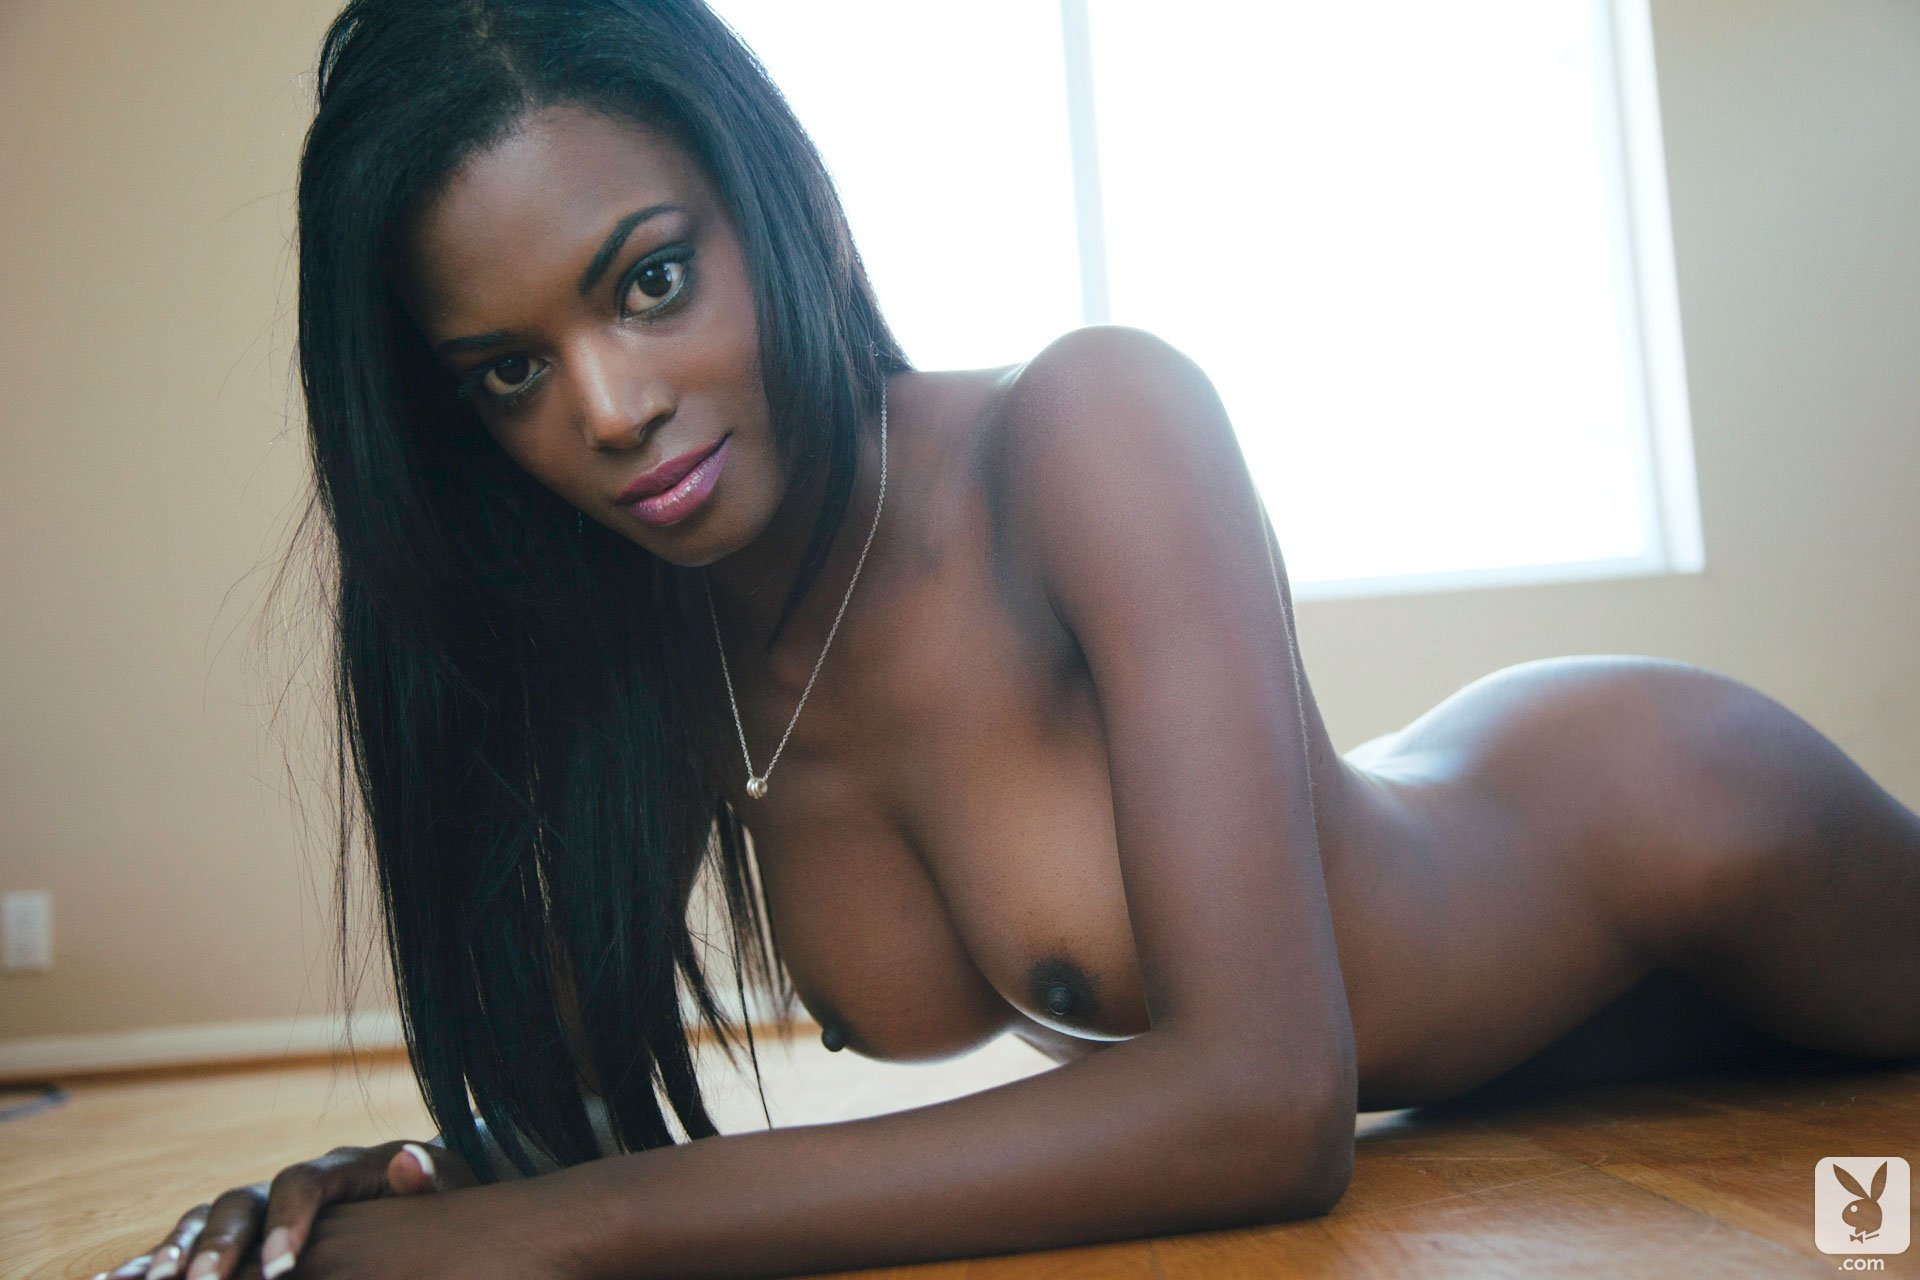 Naked photos of black women in kansas city, latina girls in sexy underwear